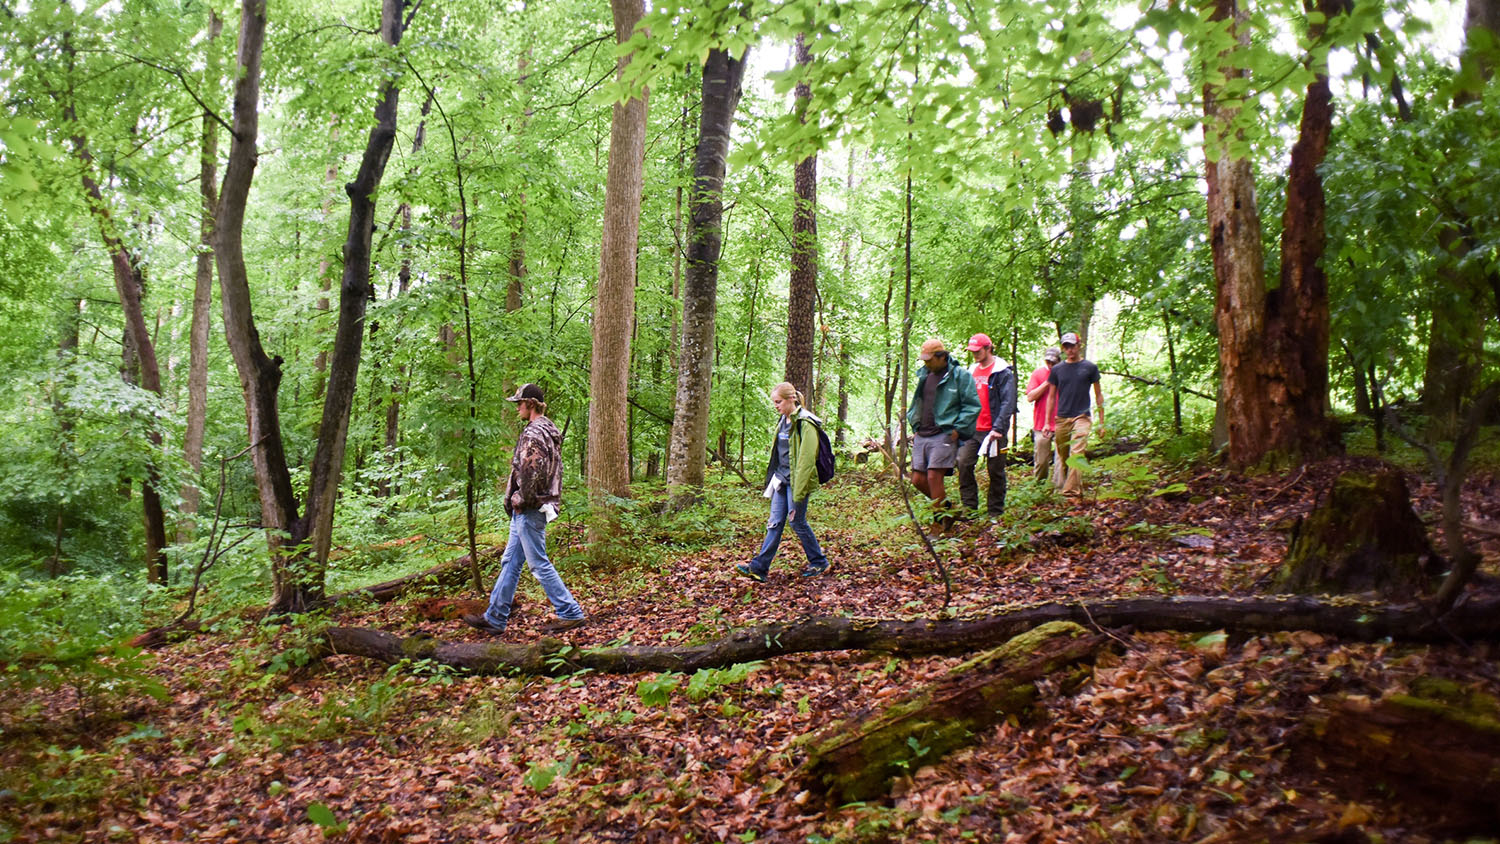 Students in the field - Extensions and Outreach - College of Natural Resources at NC State University